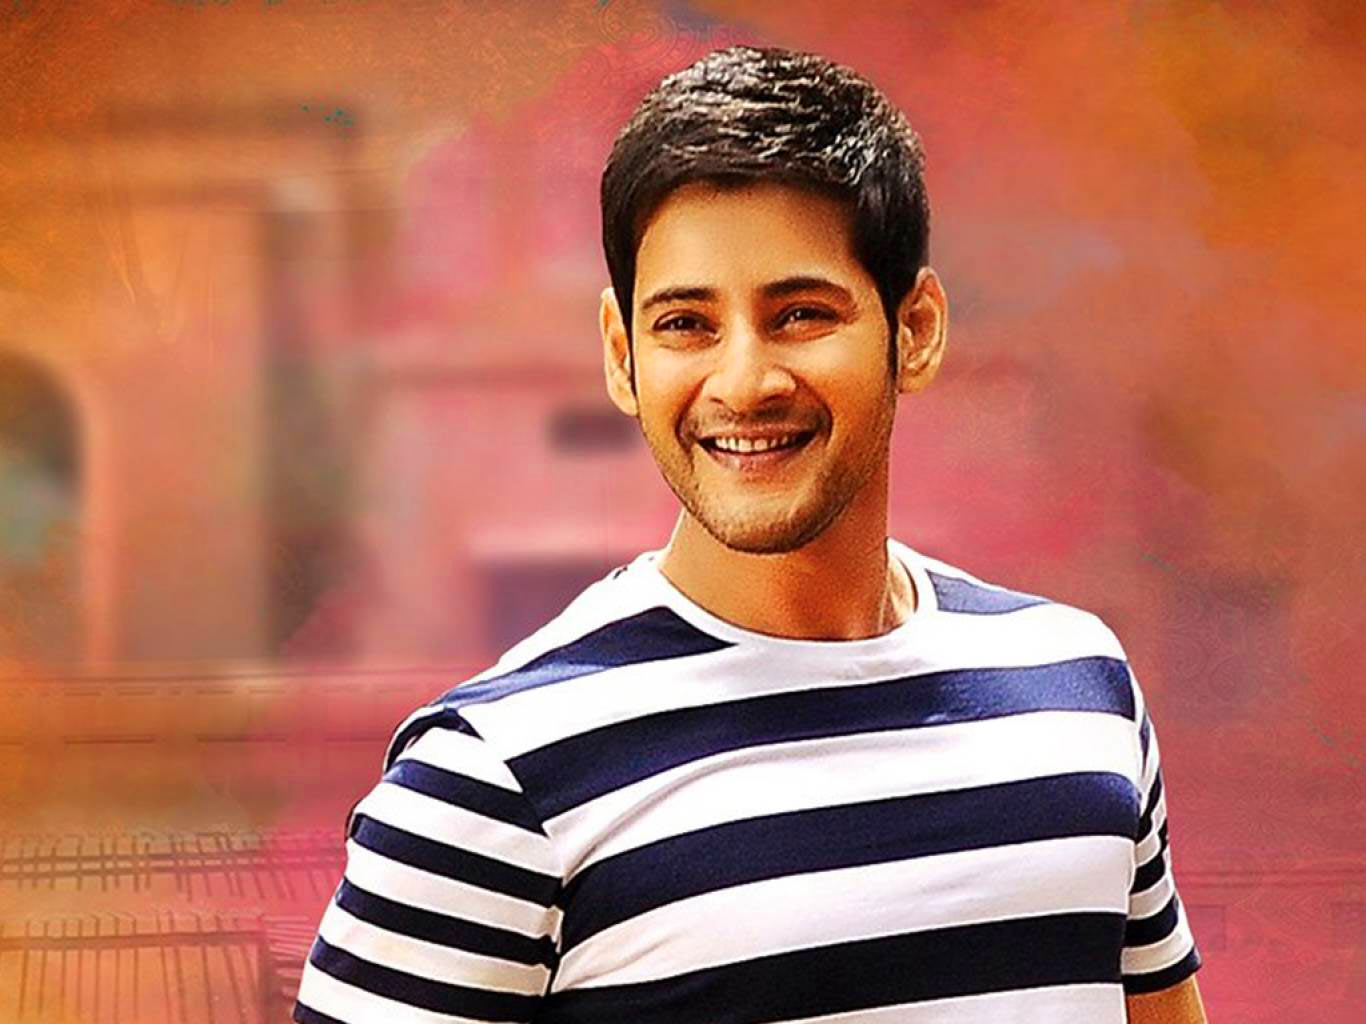 Mahesh babu photo 46